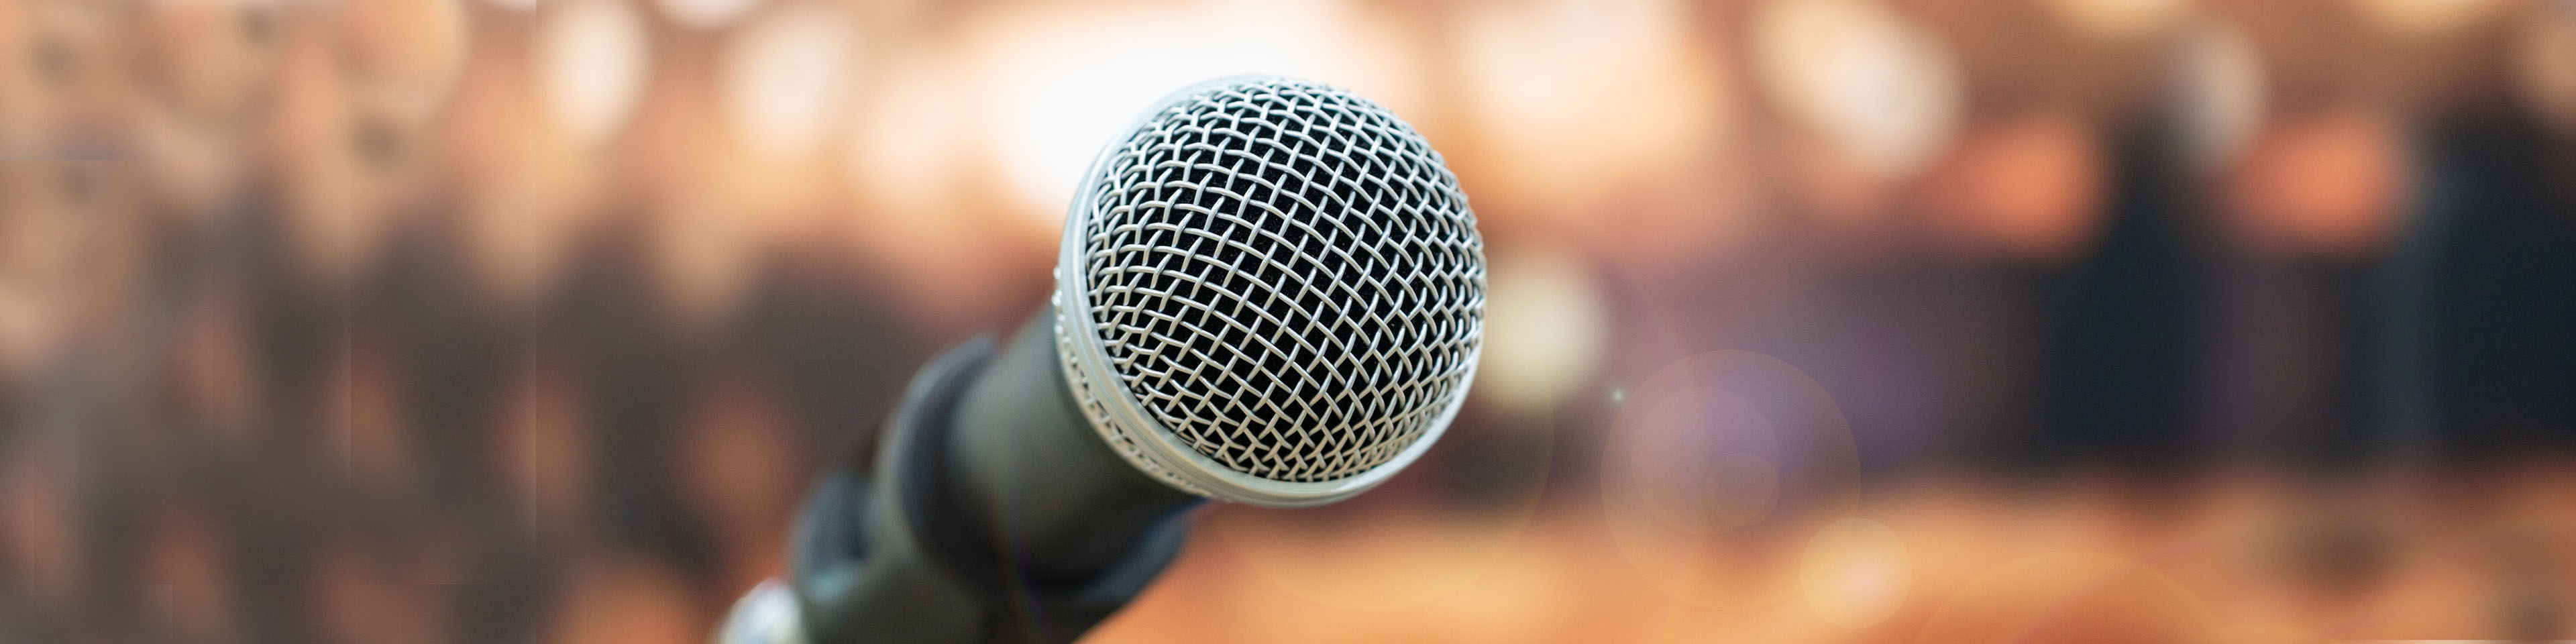 Microphones on abstract blurred of speech in meeting room front speaking blur people in even